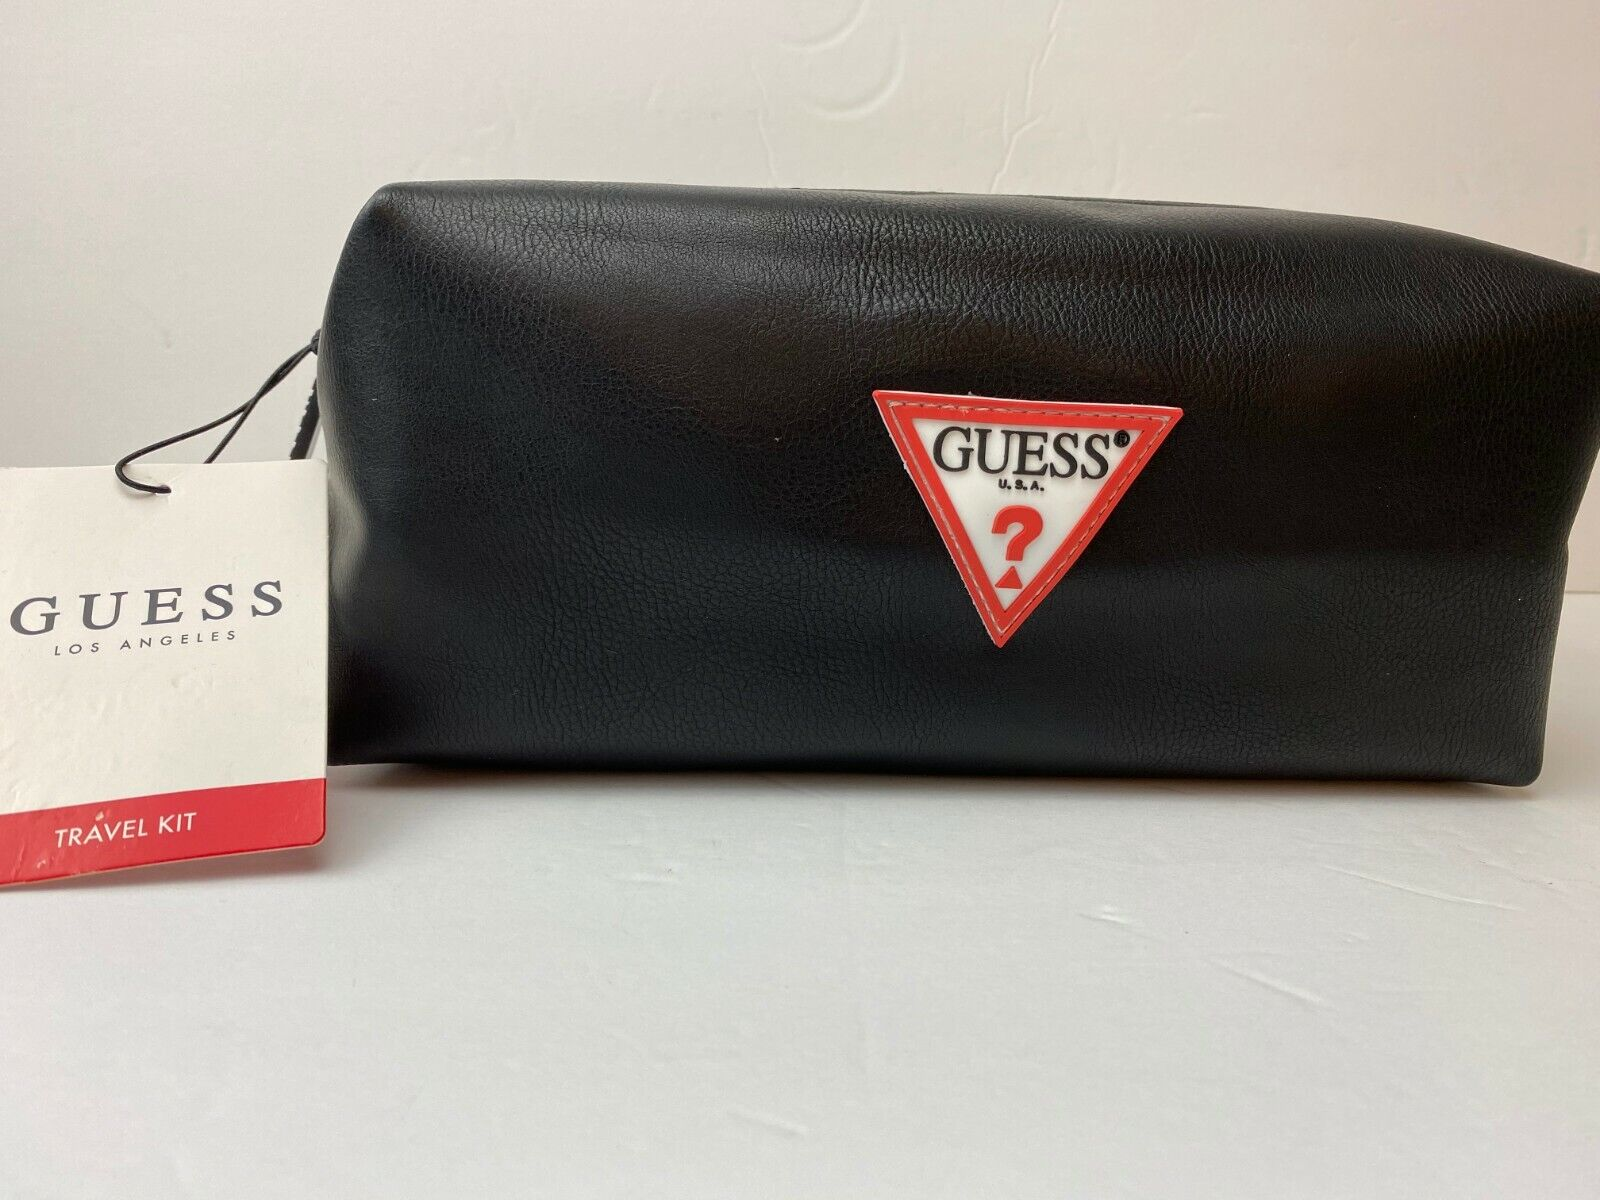 NWT Guess Los Angeles Men's Travel Kit Black Leather Toiletr